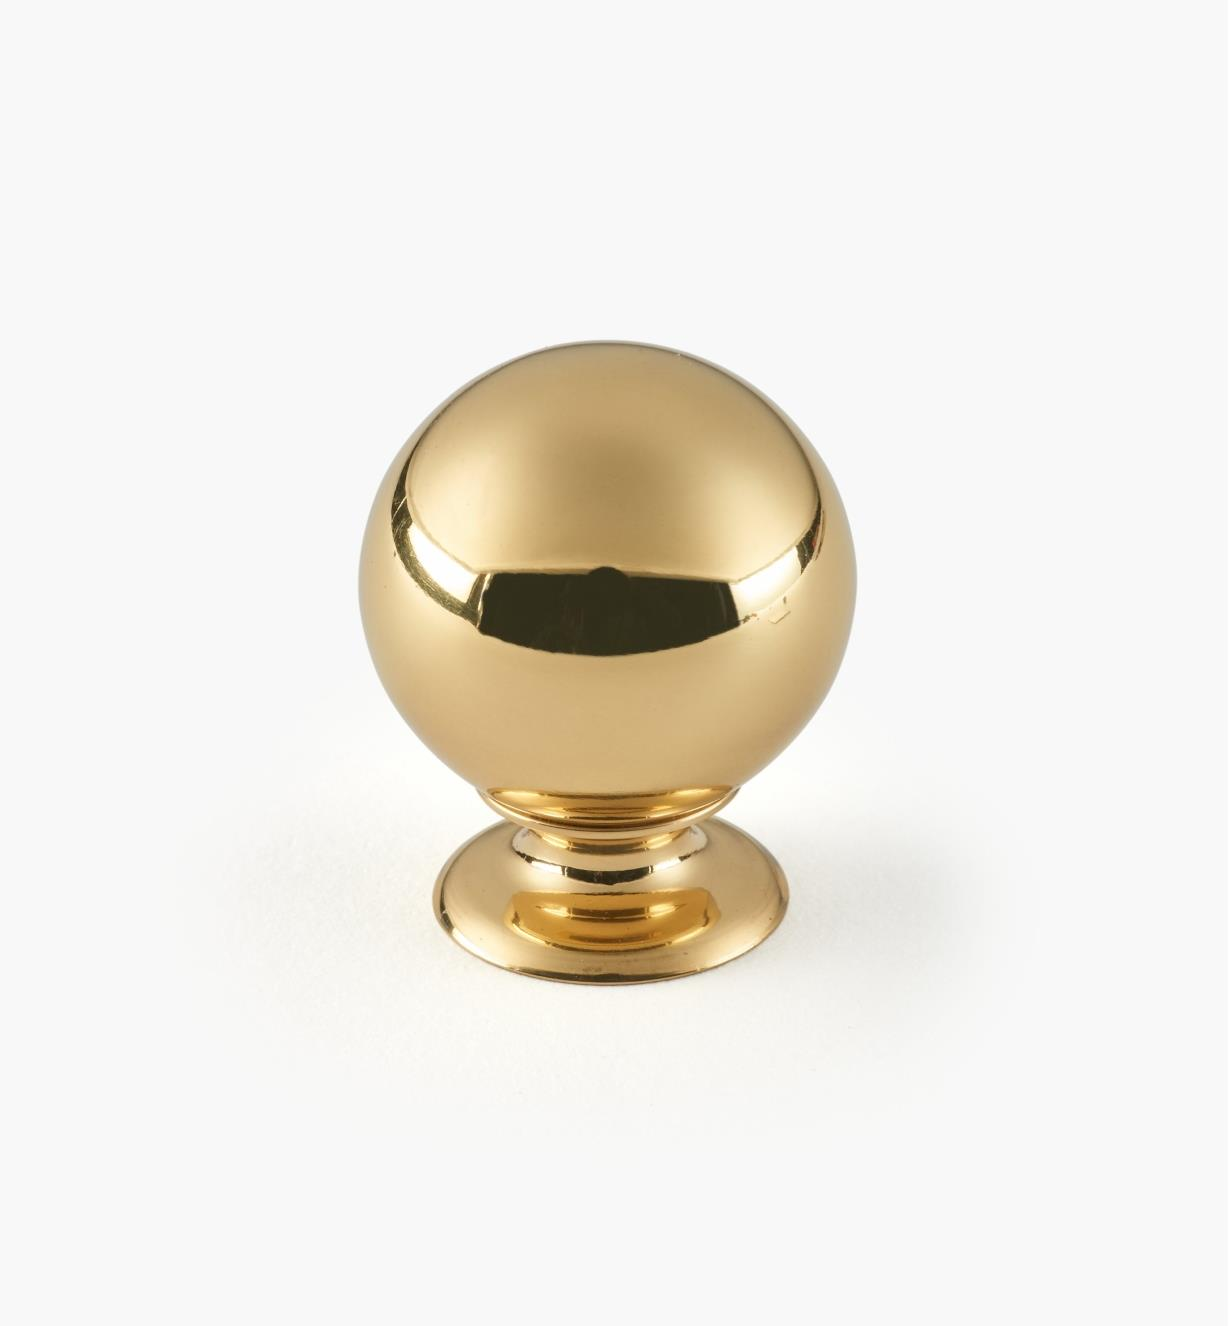 "01W1901 - 1 1/8"" x 1 7/16"" Polished Brass Ball Knob"